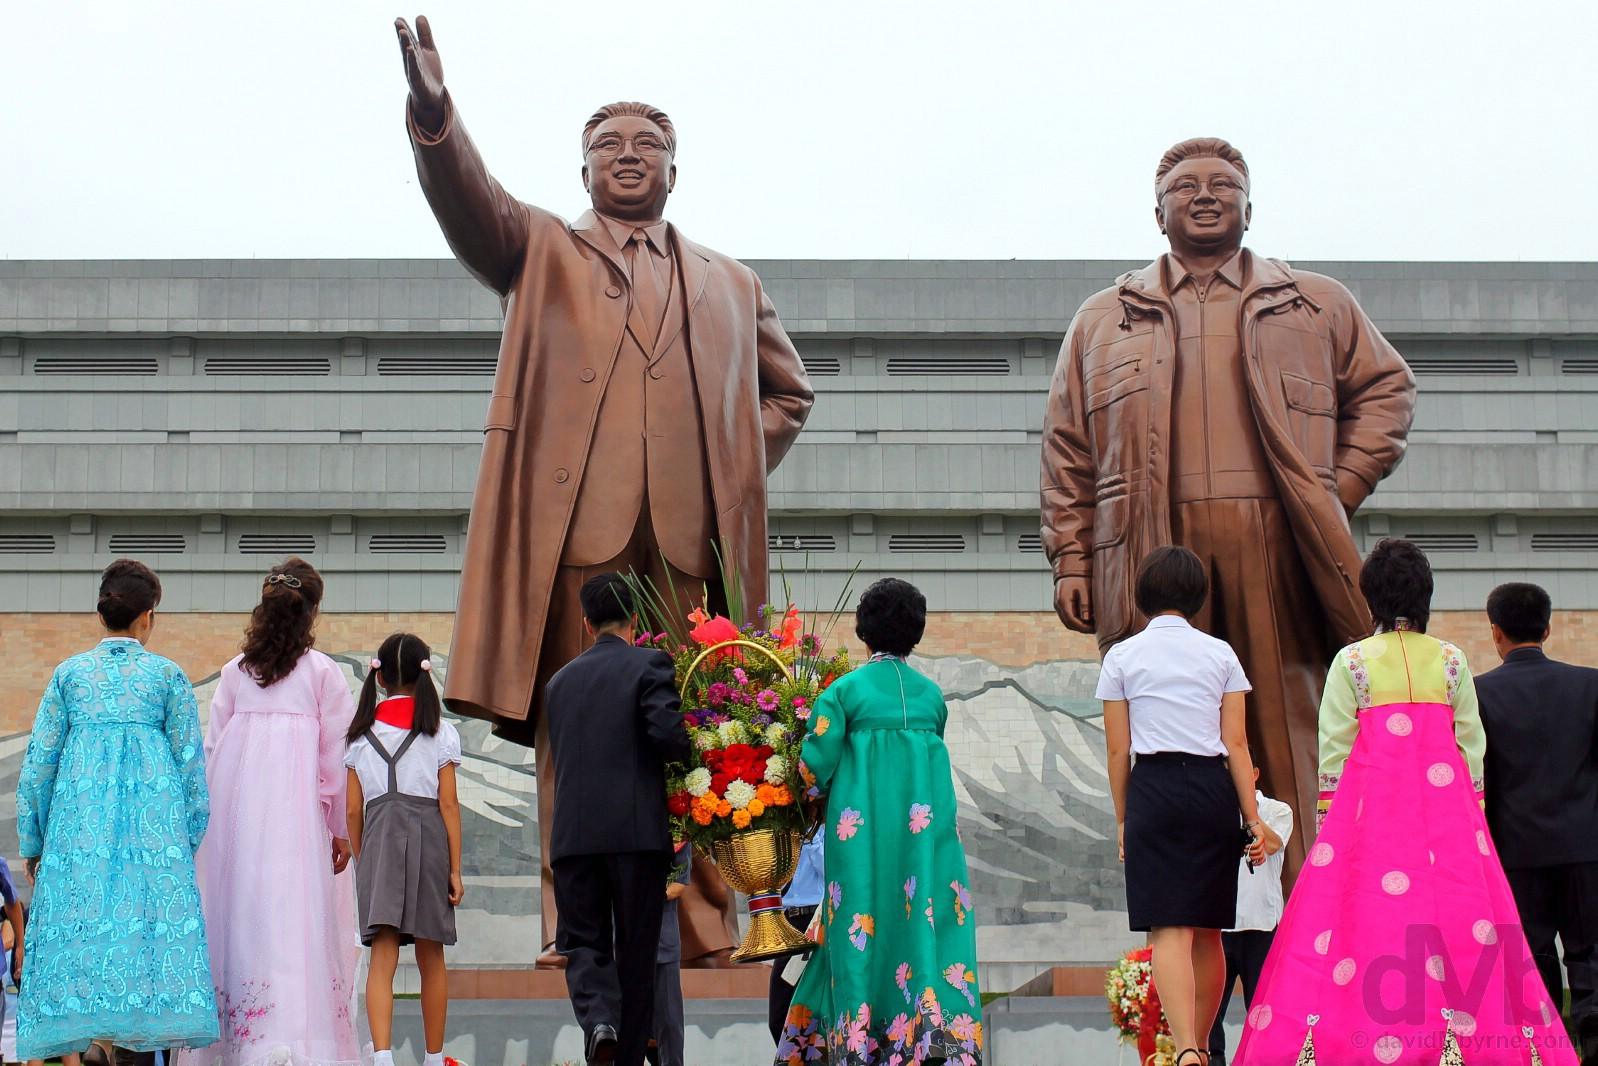 Flower offerings to Kim Il-sung, The Great Leader (left) & Kim Jong-il, The Dear Leader (right), at the Grand Monument on Mansu Hill, Pyongyang, North Korea. August 15, 2017.